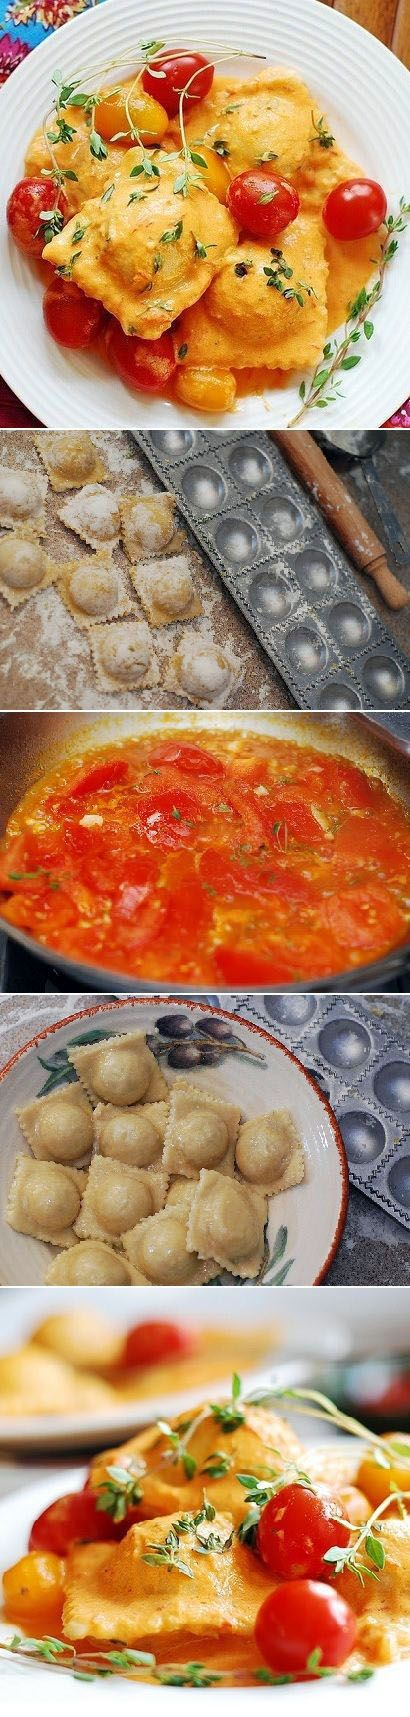 How to make ravioli from scratch, using a ravioli mold  with spinach and ricotta cheese filling, in homemade tomato cream sauce